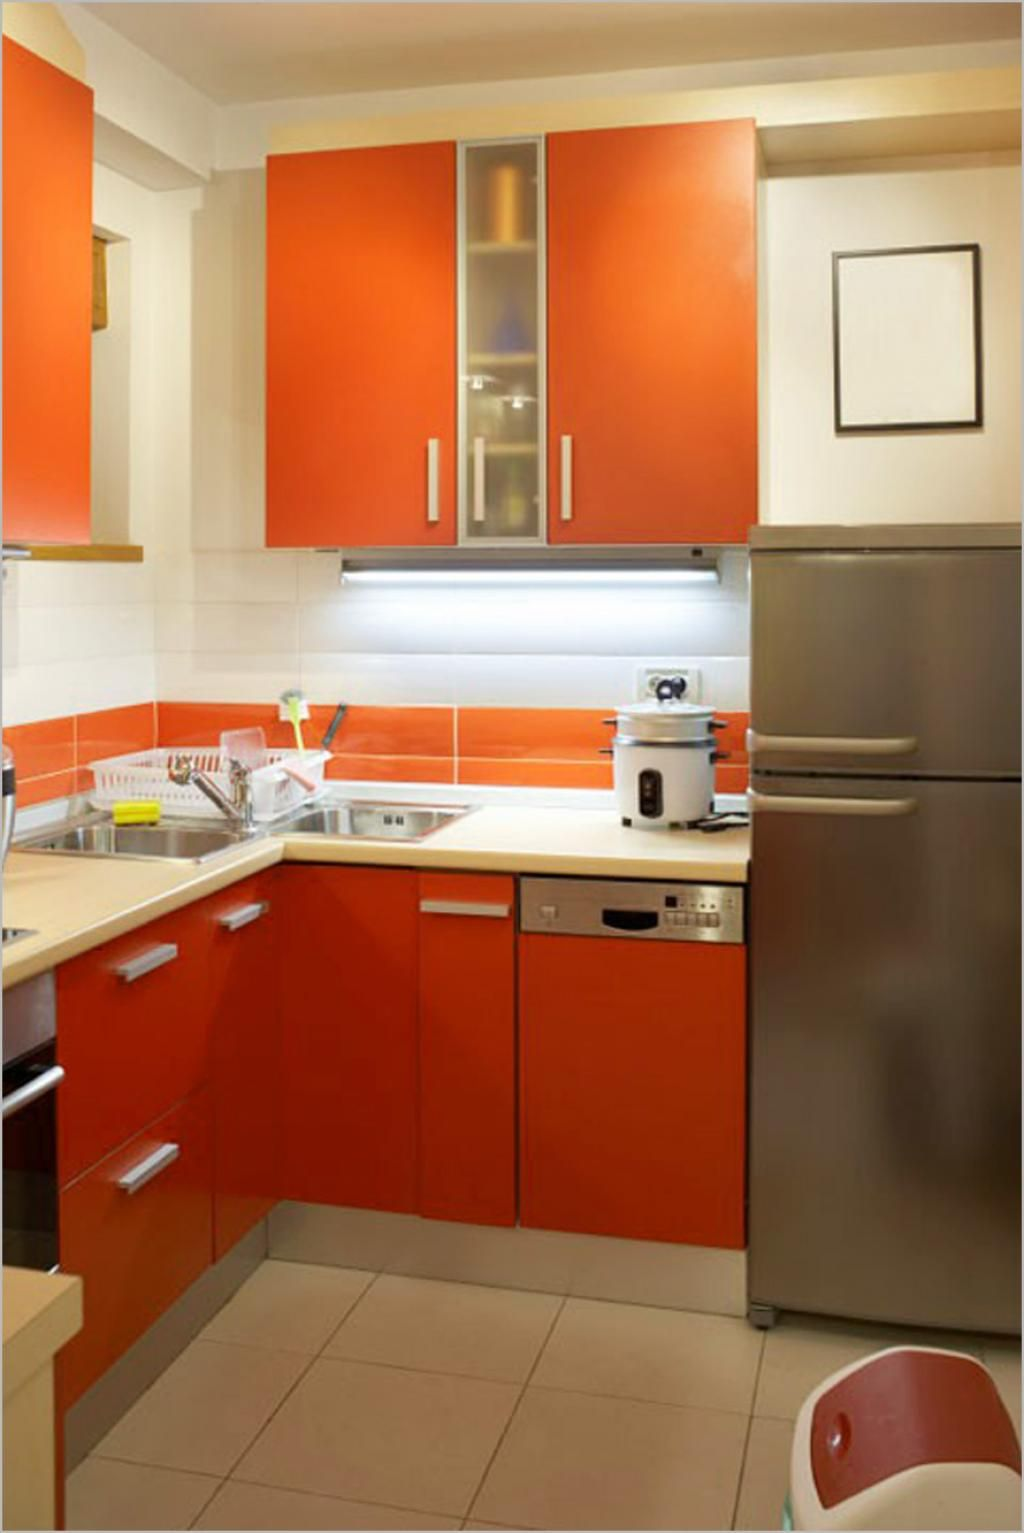 More Design Ideas for Modern Kitchen Styles great